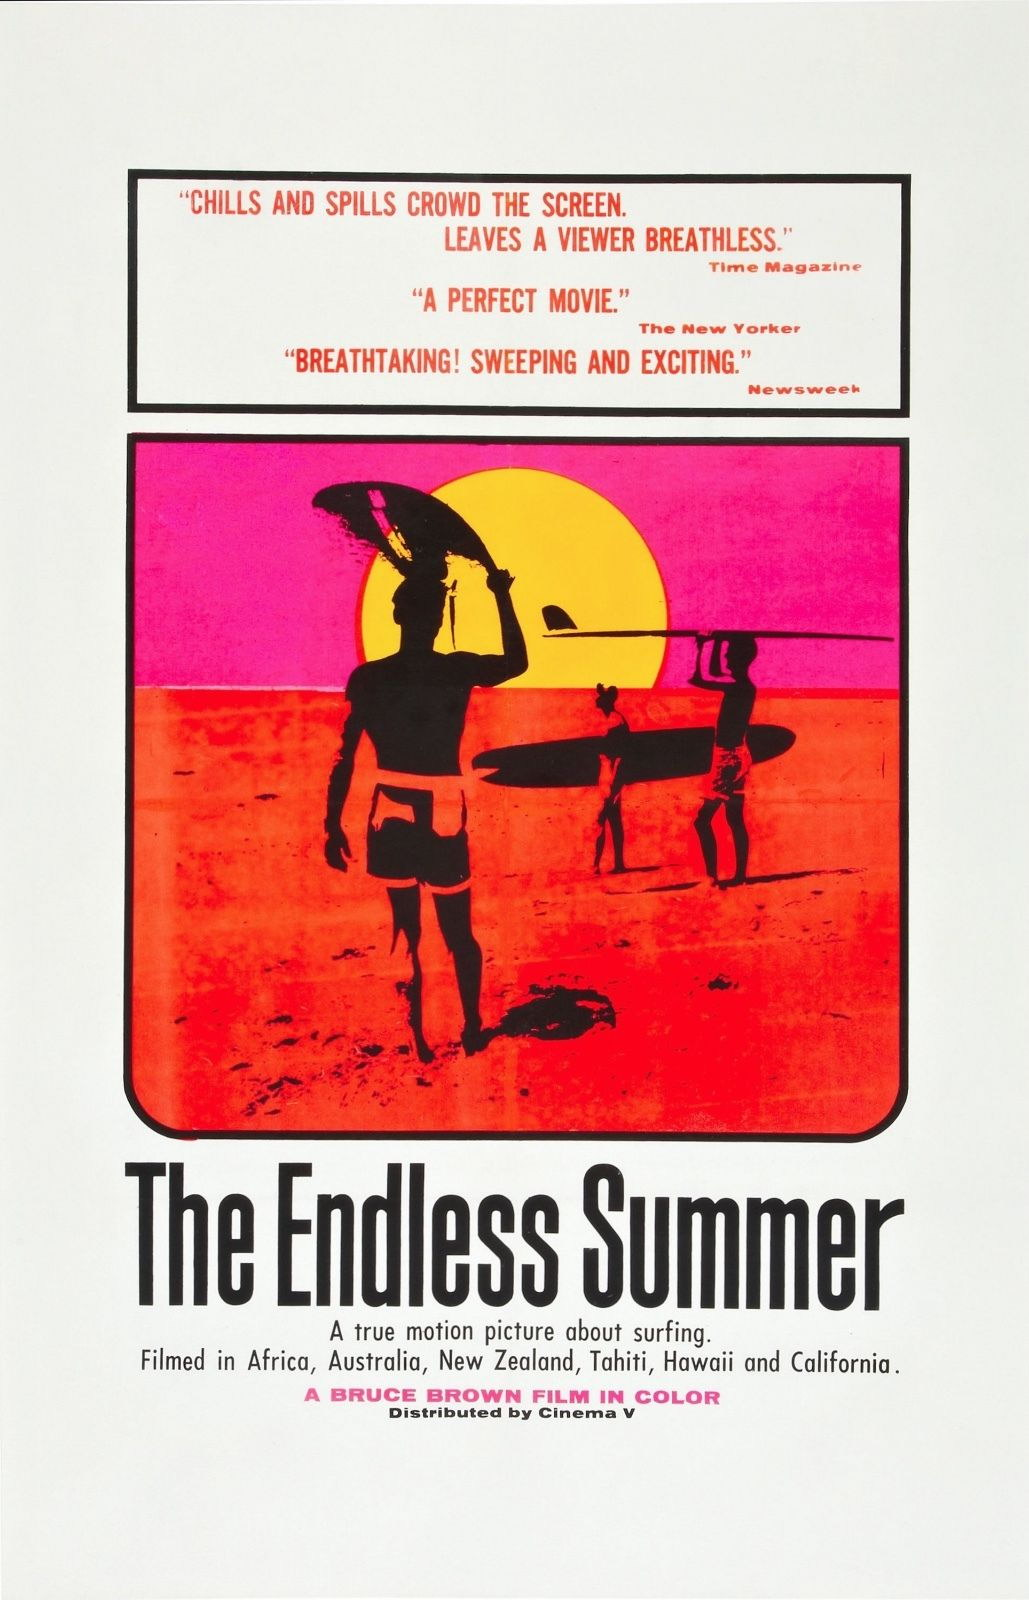 73020-The-Endless-Summer-Sport-Documentary-Classic-Wall-Print-Poster-Affiche